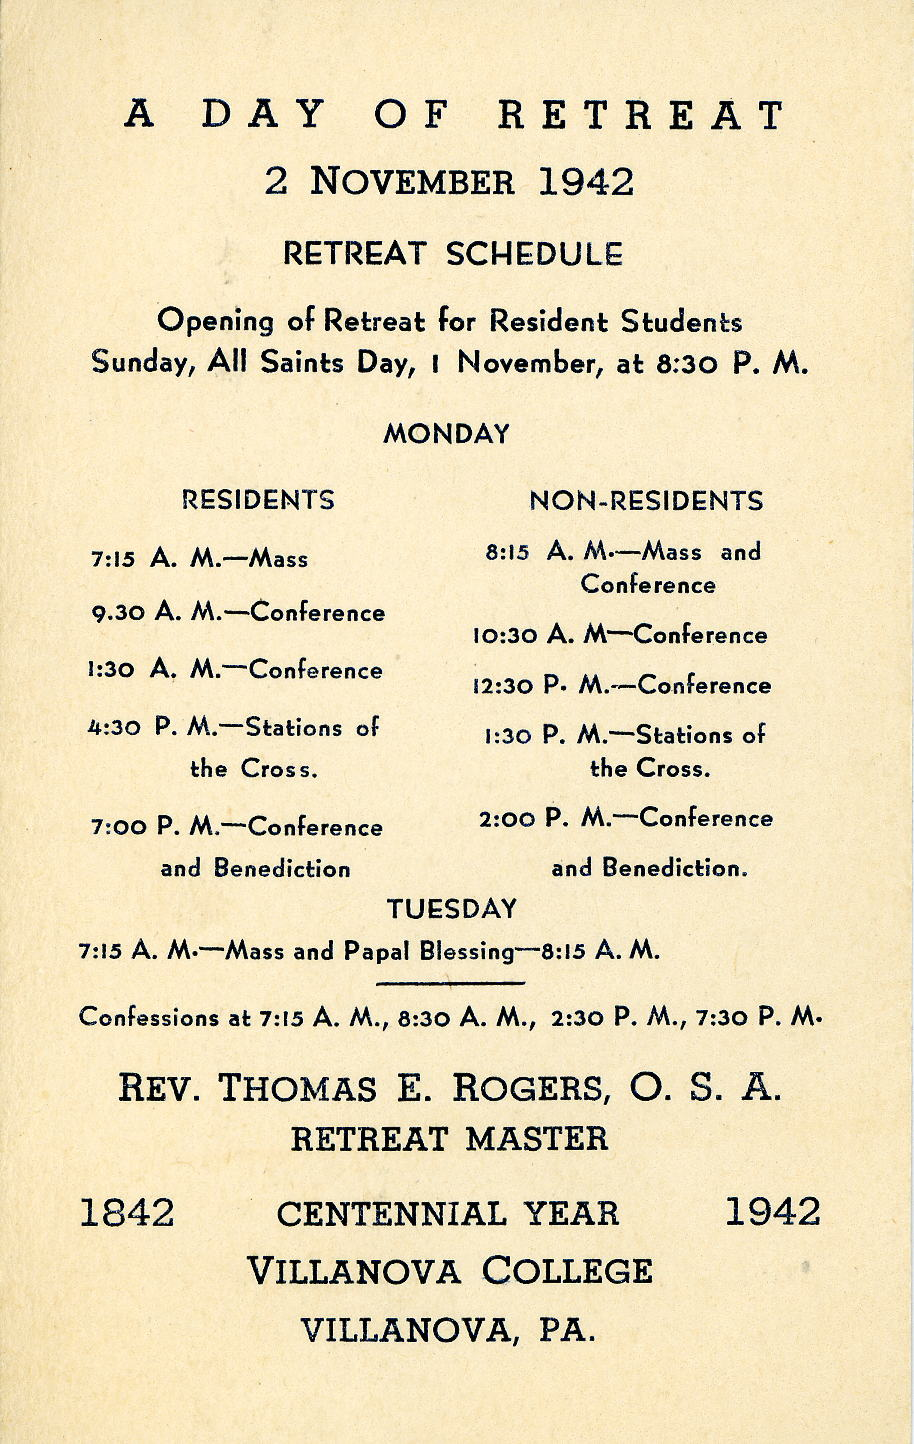 Student Retreat Schedule, 2 November 1942.